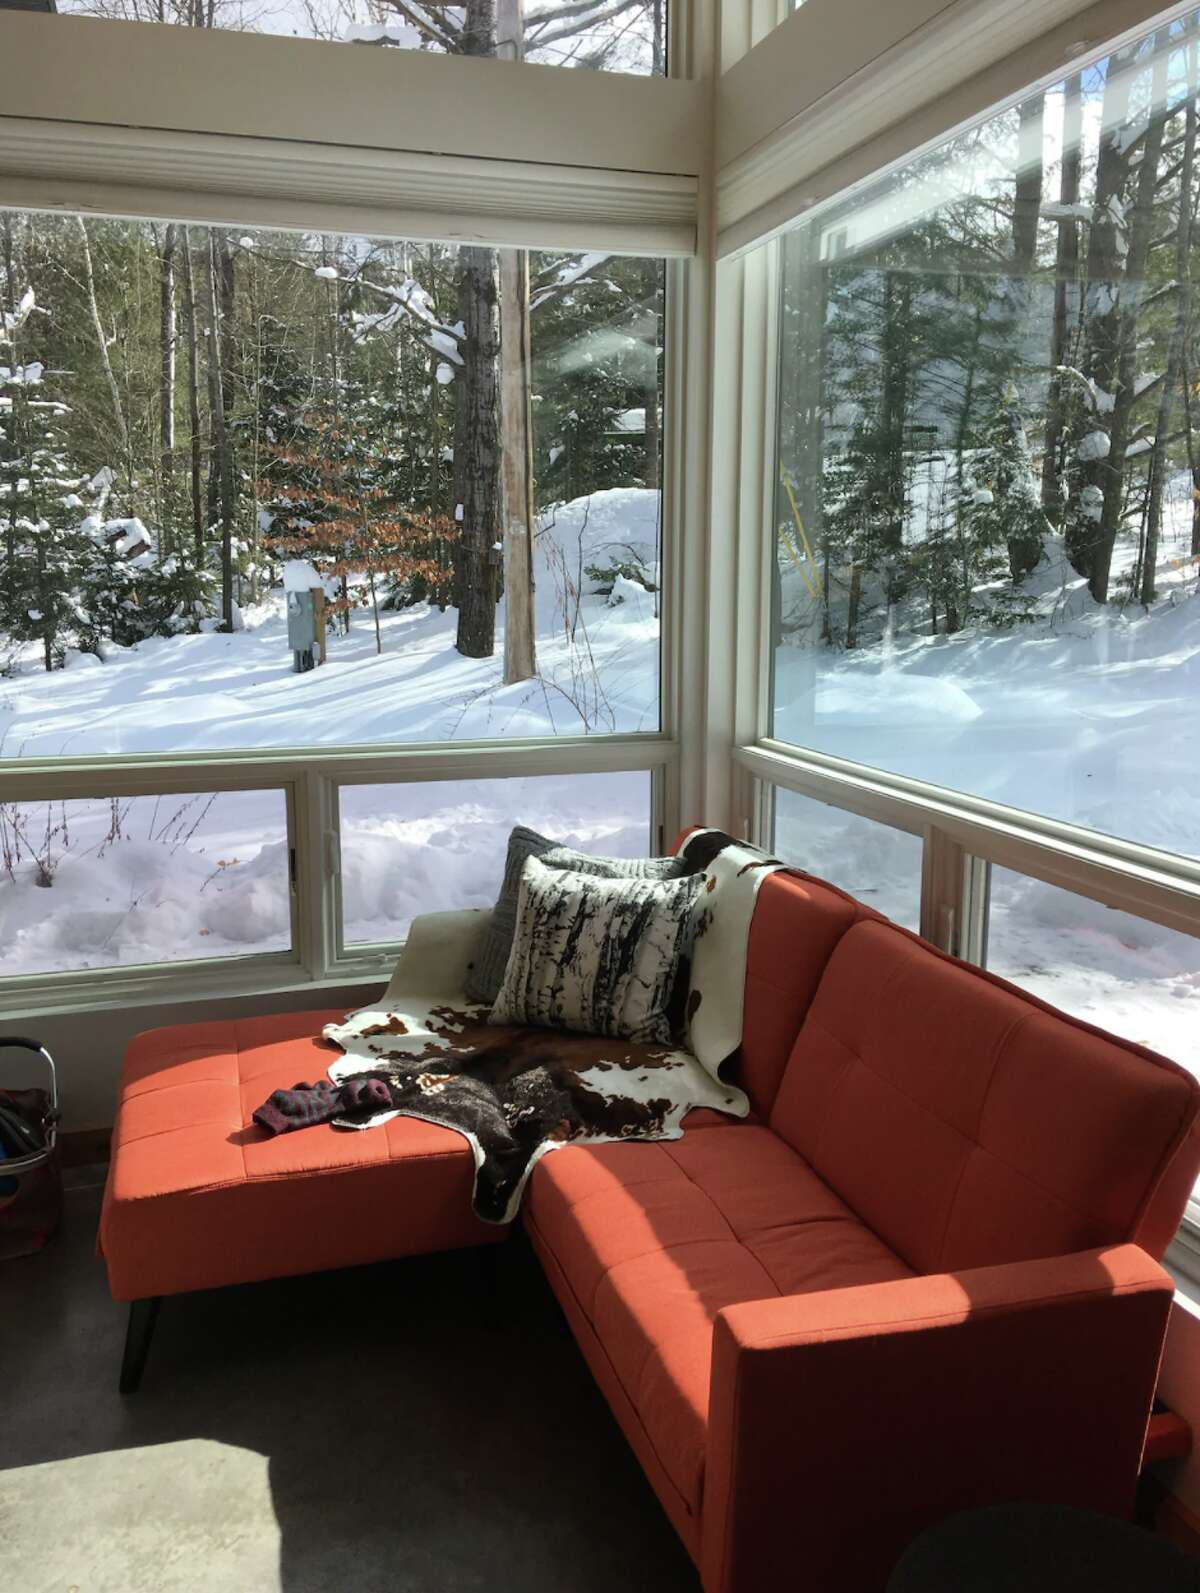 Lake Placid, New York | Room for 3 guests | $126 per night